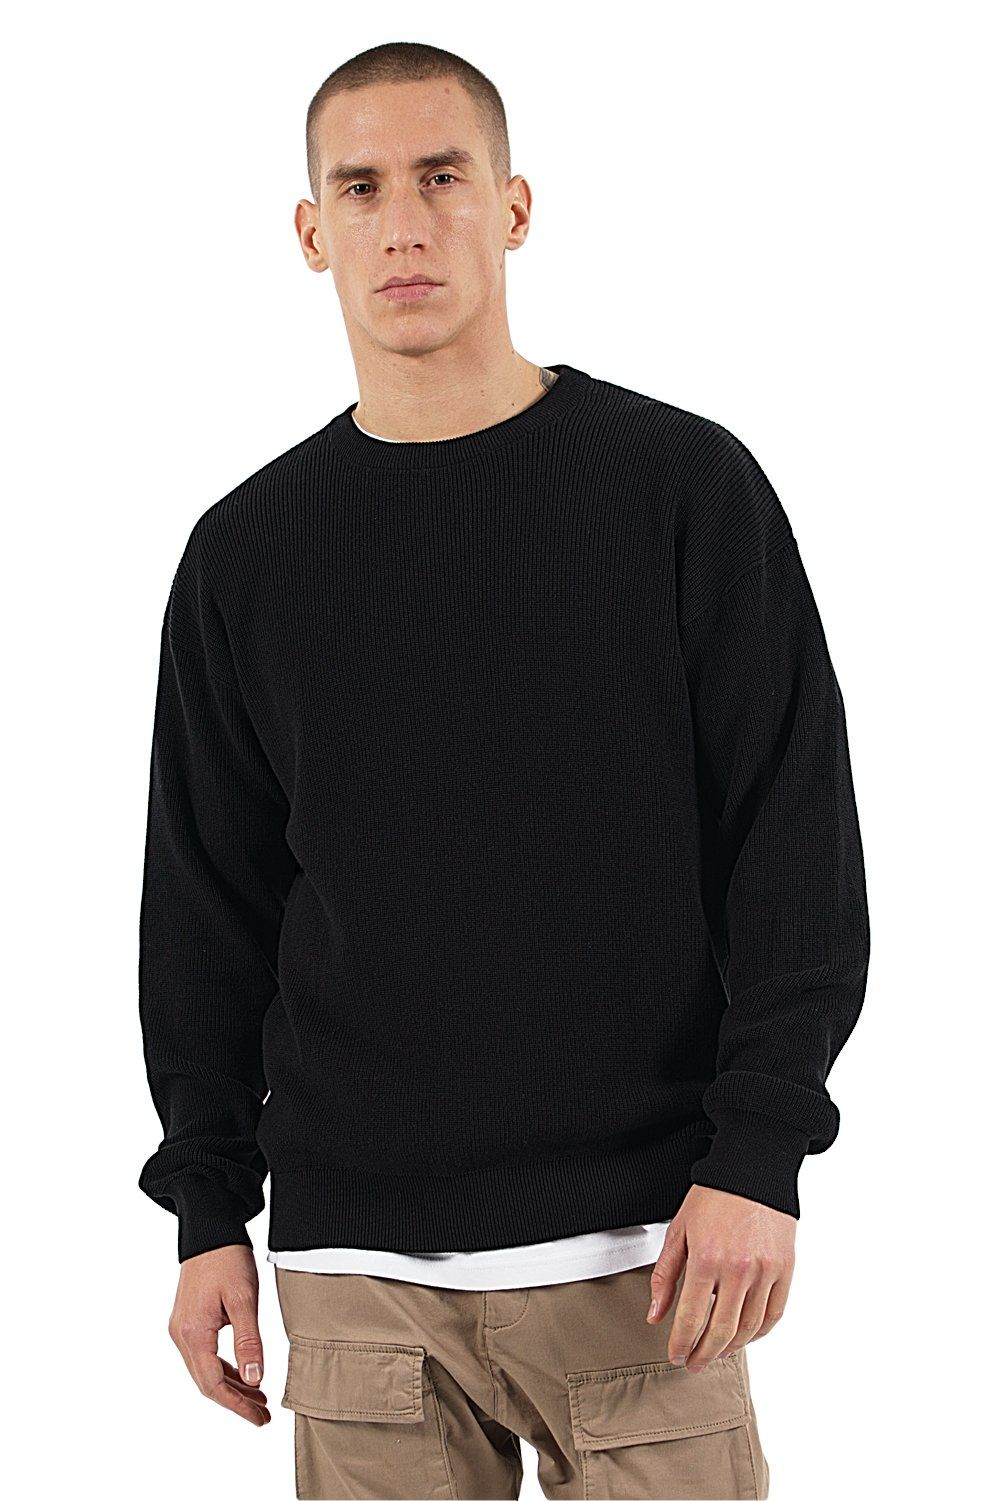 Milan Oversize Knit Sweater Black